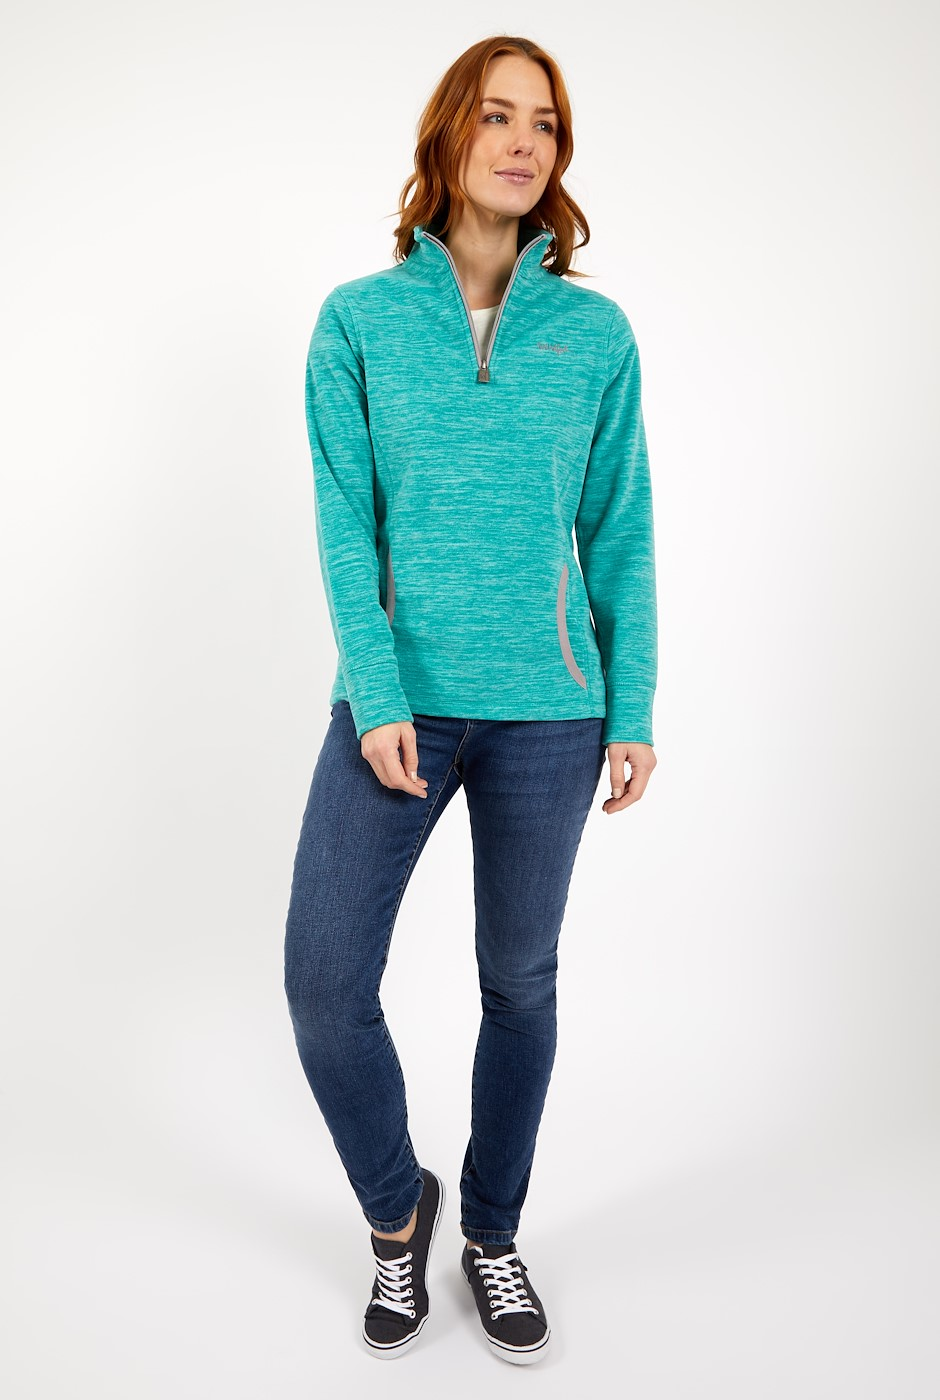 Nancy 1/4 Zip Space Dyed Fleece Light Teal